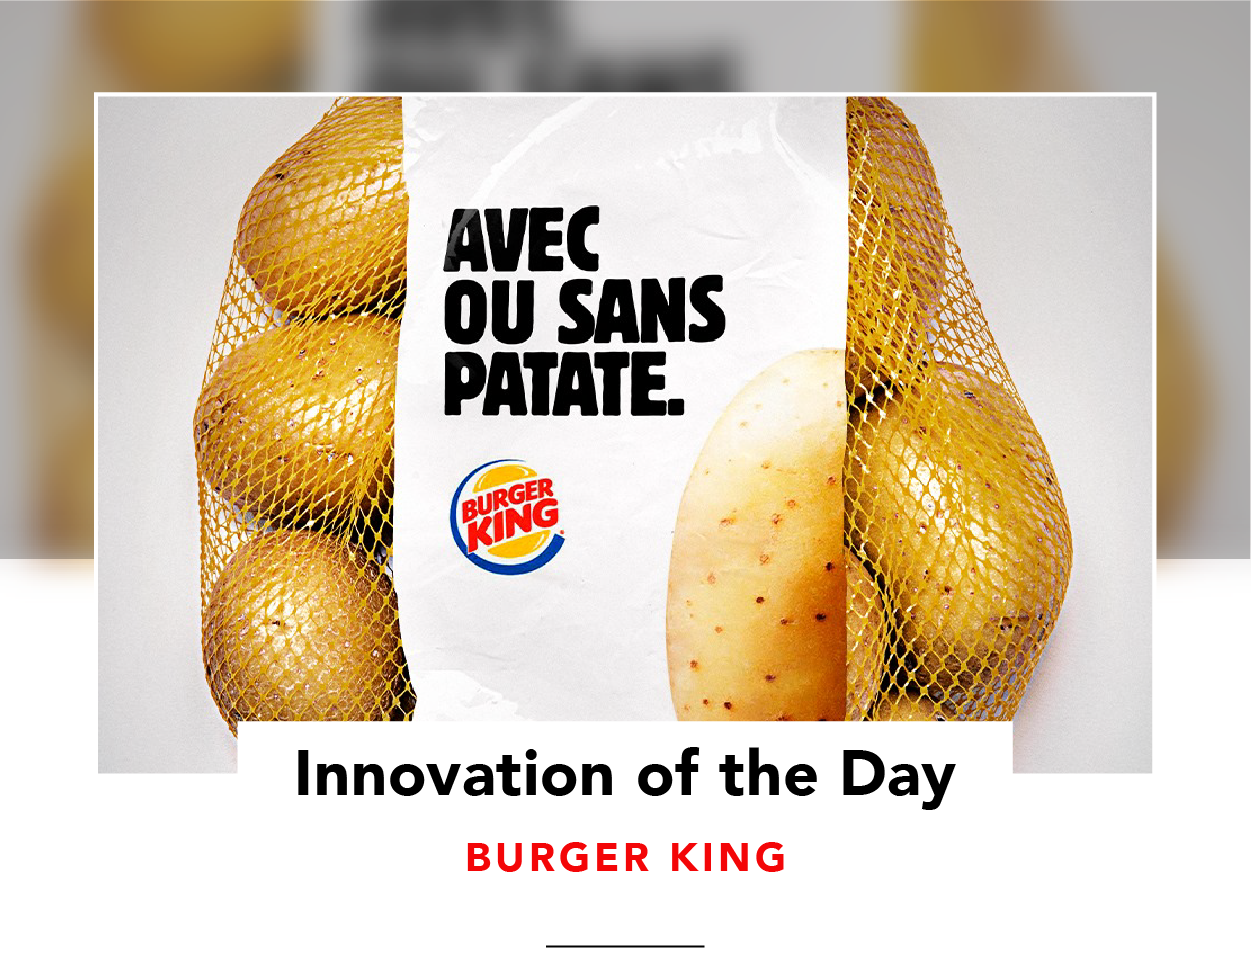 Bag of potatoes with Burger King branding and the slogan 'Avec ou sans patate'.